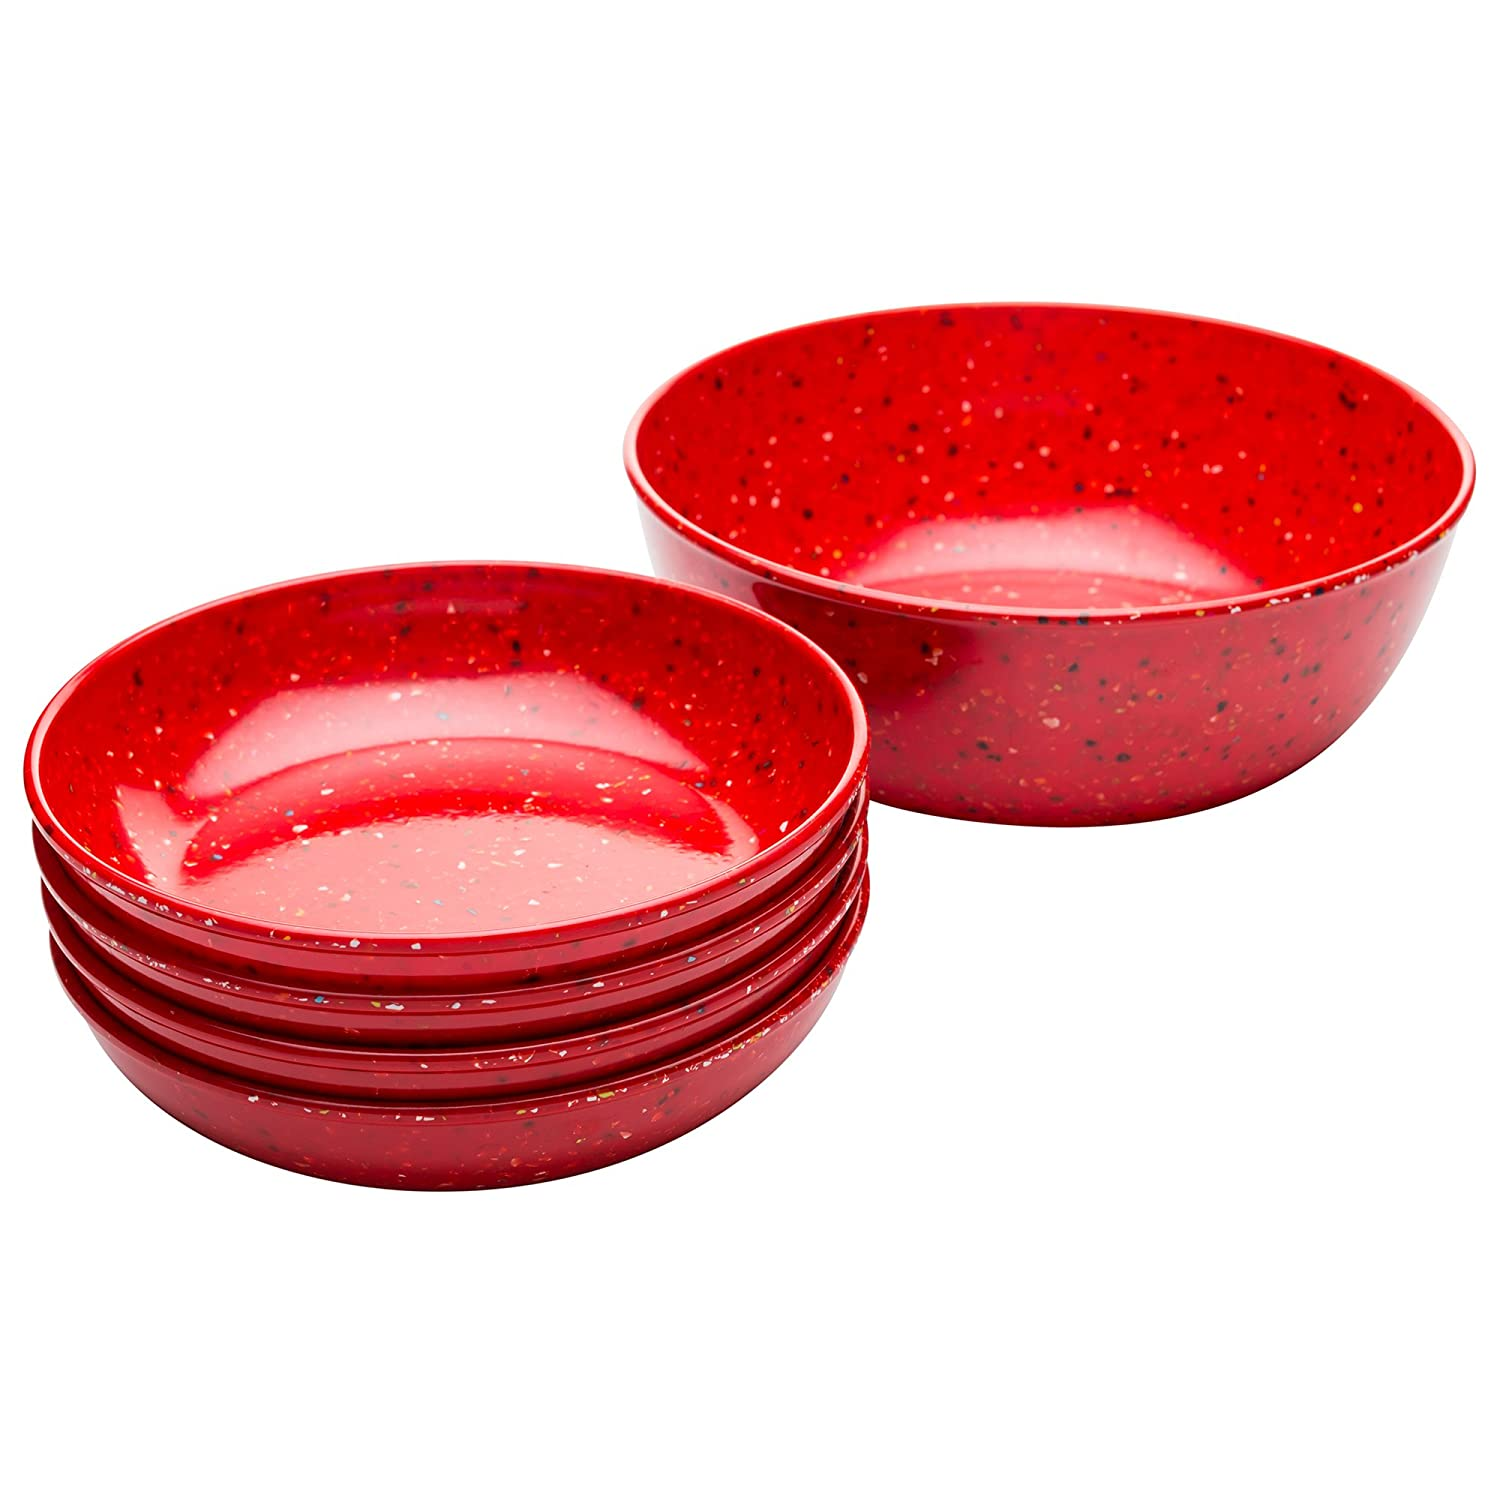 Amazon.com Zak! Designs Confetti Pasta Serving and Inidual Bowls (5-Piece Set) BPA-free Melamine Red Kitchen u0026 Dining  sc 1 st  Amazon.com & Amazon.com: Zak! Designs Confetti Pasta Serving and Inidual Bowls ...